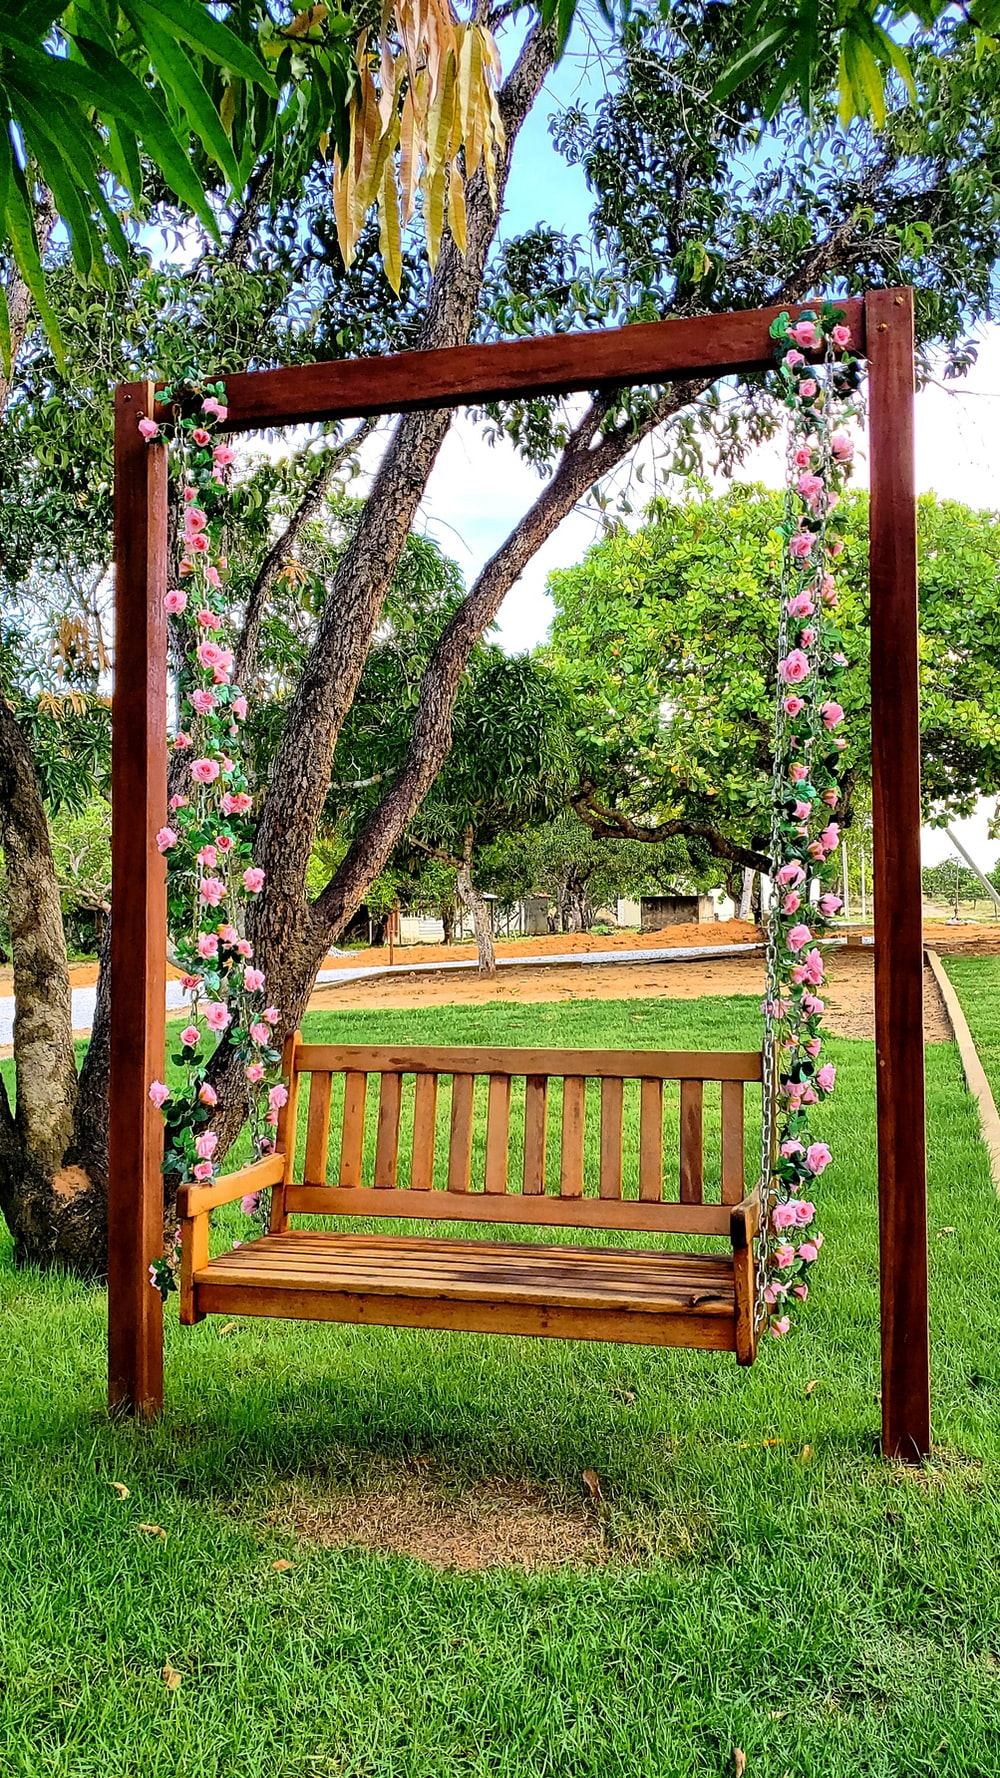 brown wooden bench under green and pink leaf tree